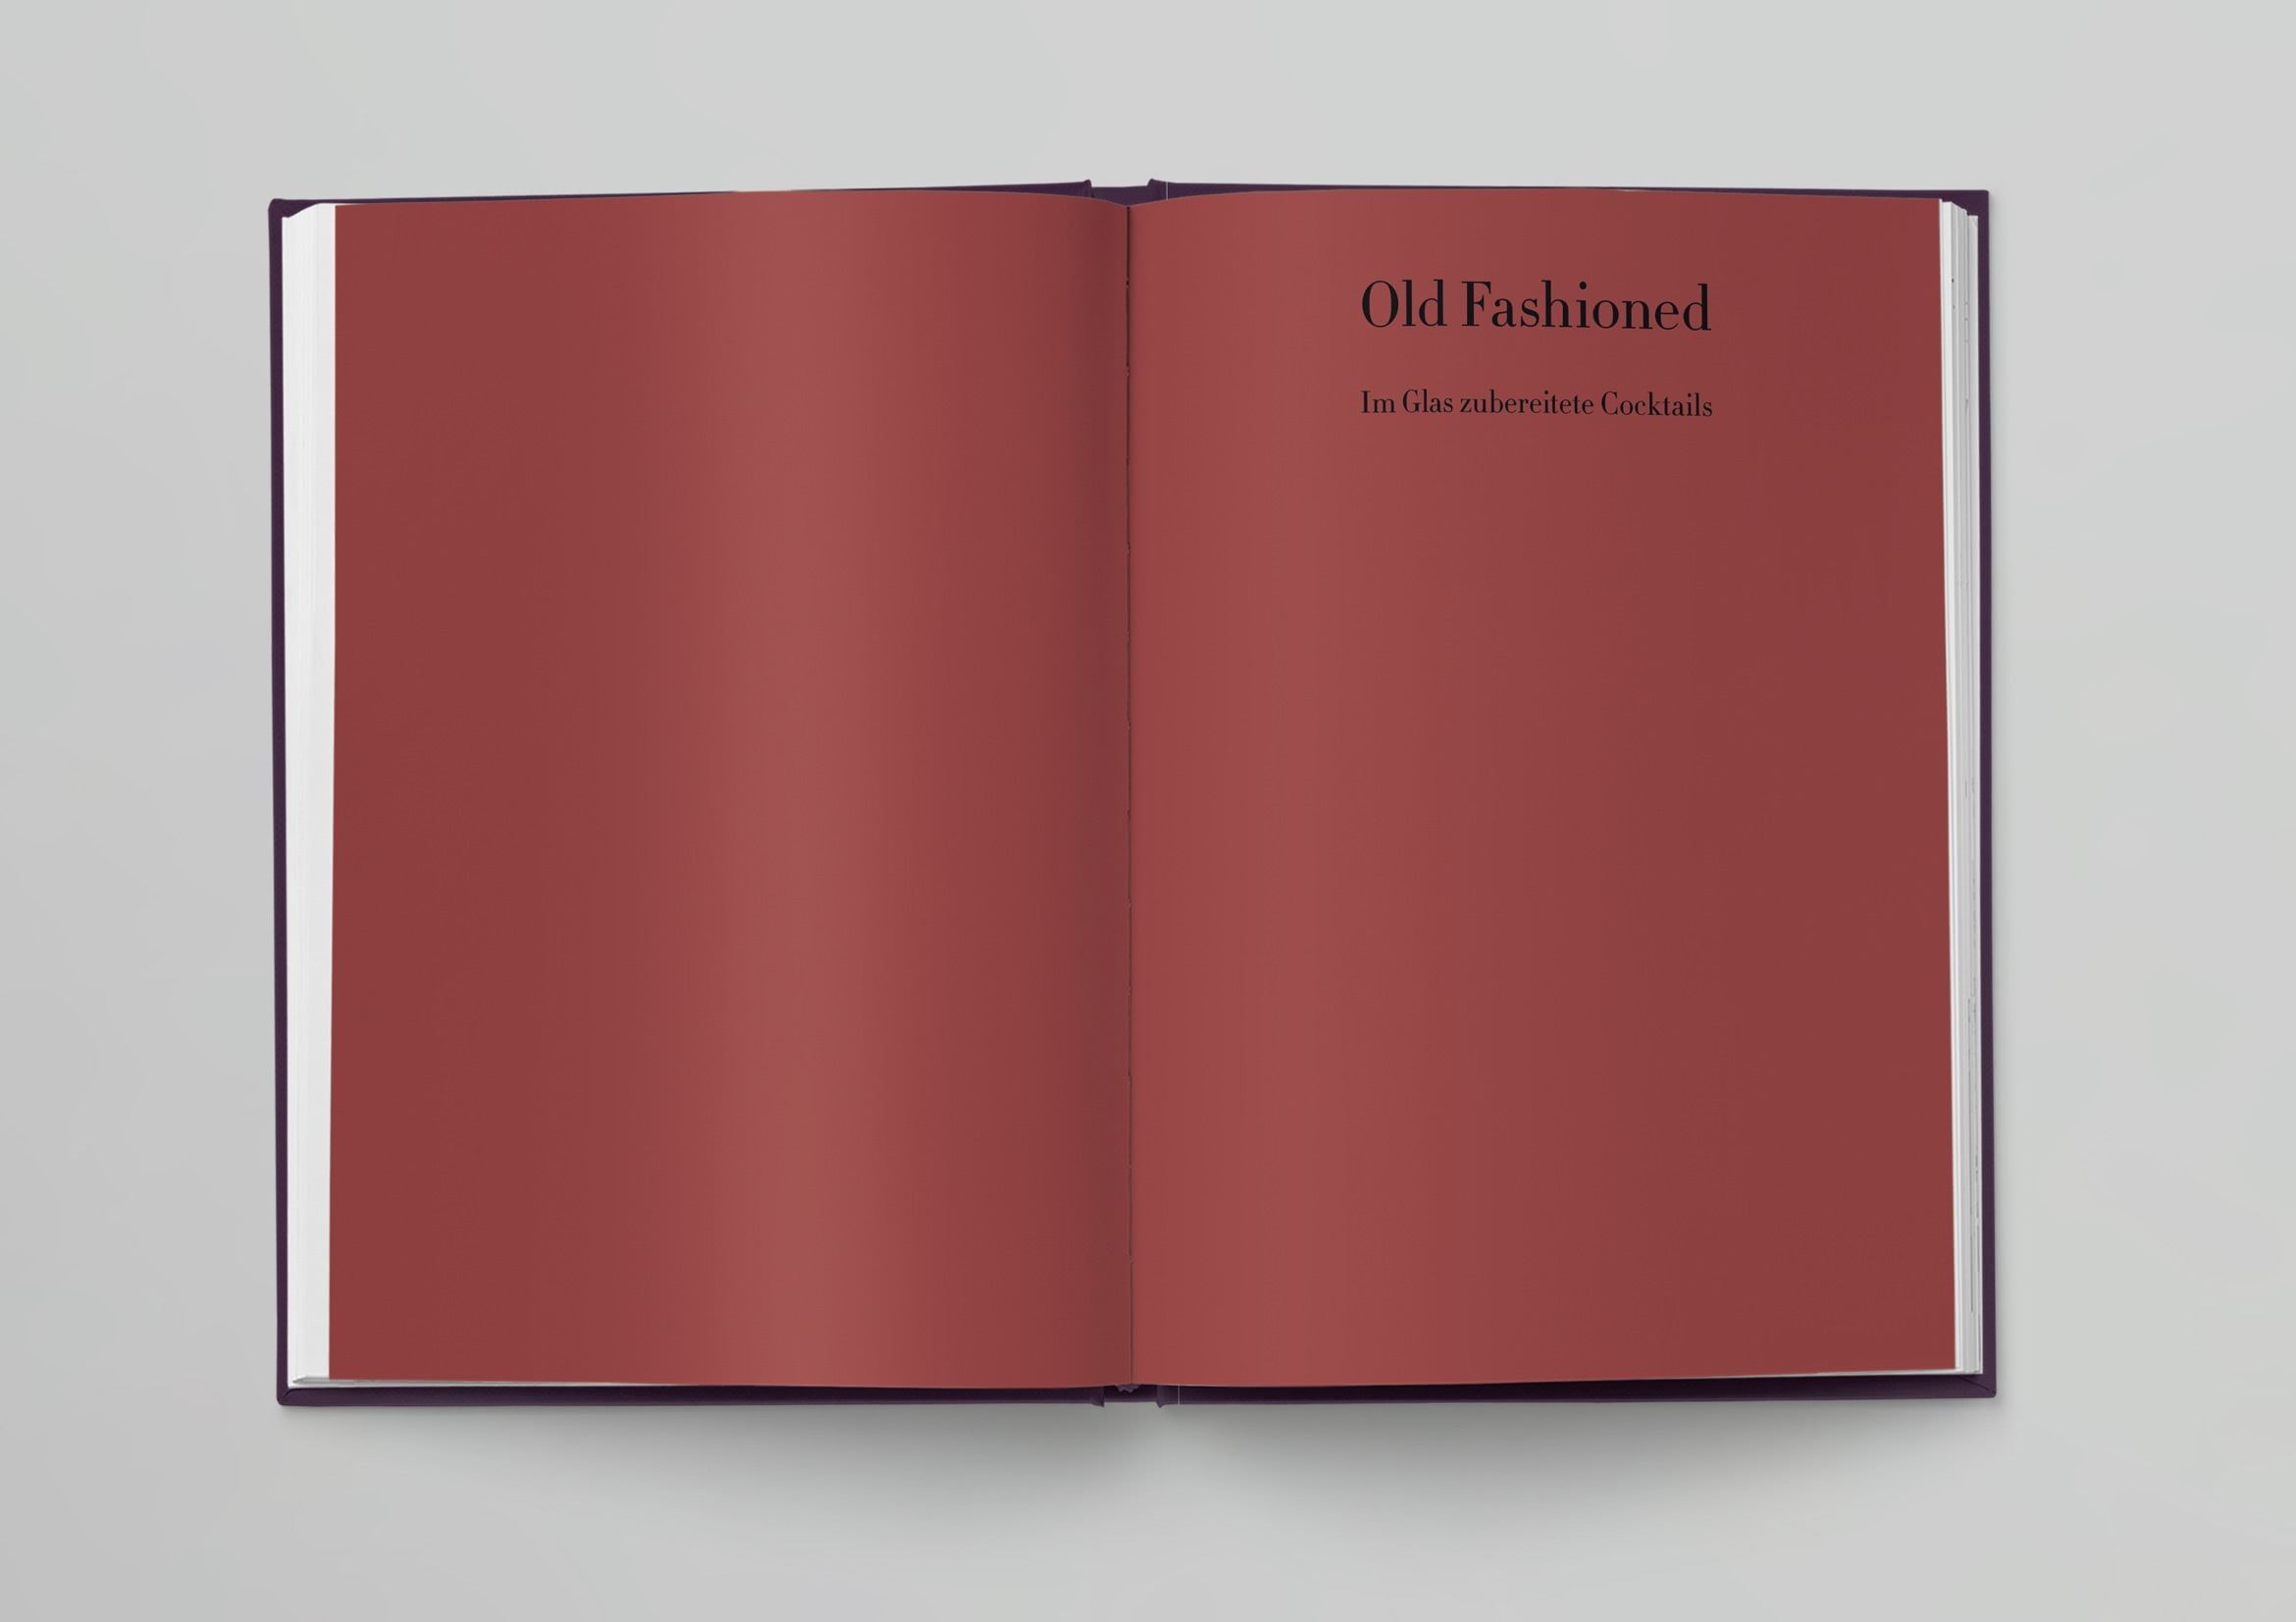 87356-Petraske-Phaidon-Cocktails-Mock-Up-IN02